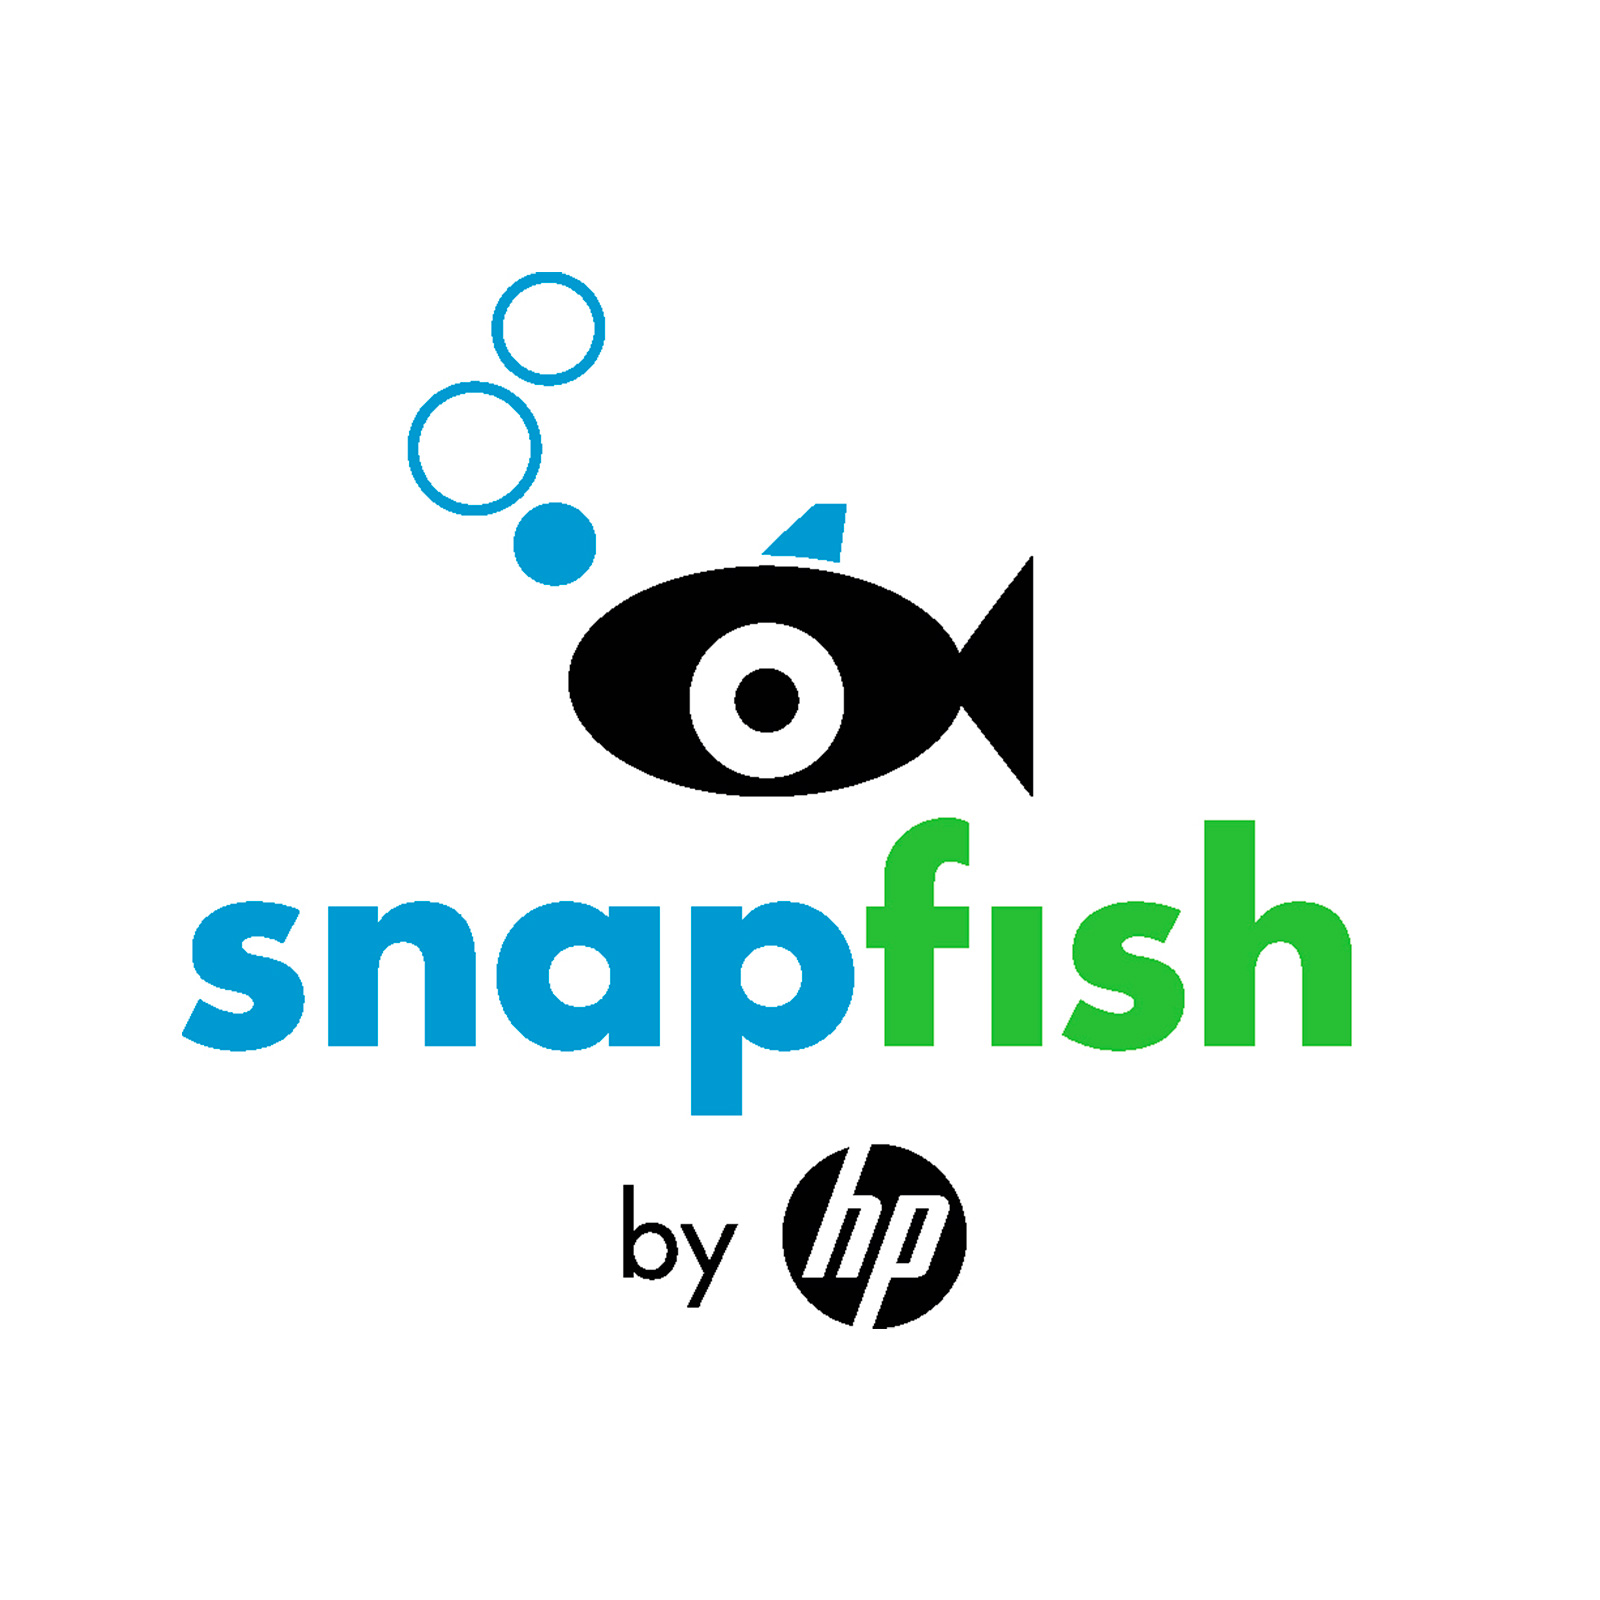 Snapfish is a web-based photo sharing social networking site that offers unlimited storage to its members for uploading photos. You can thus put away your storage space concerns for your vast collection of images.